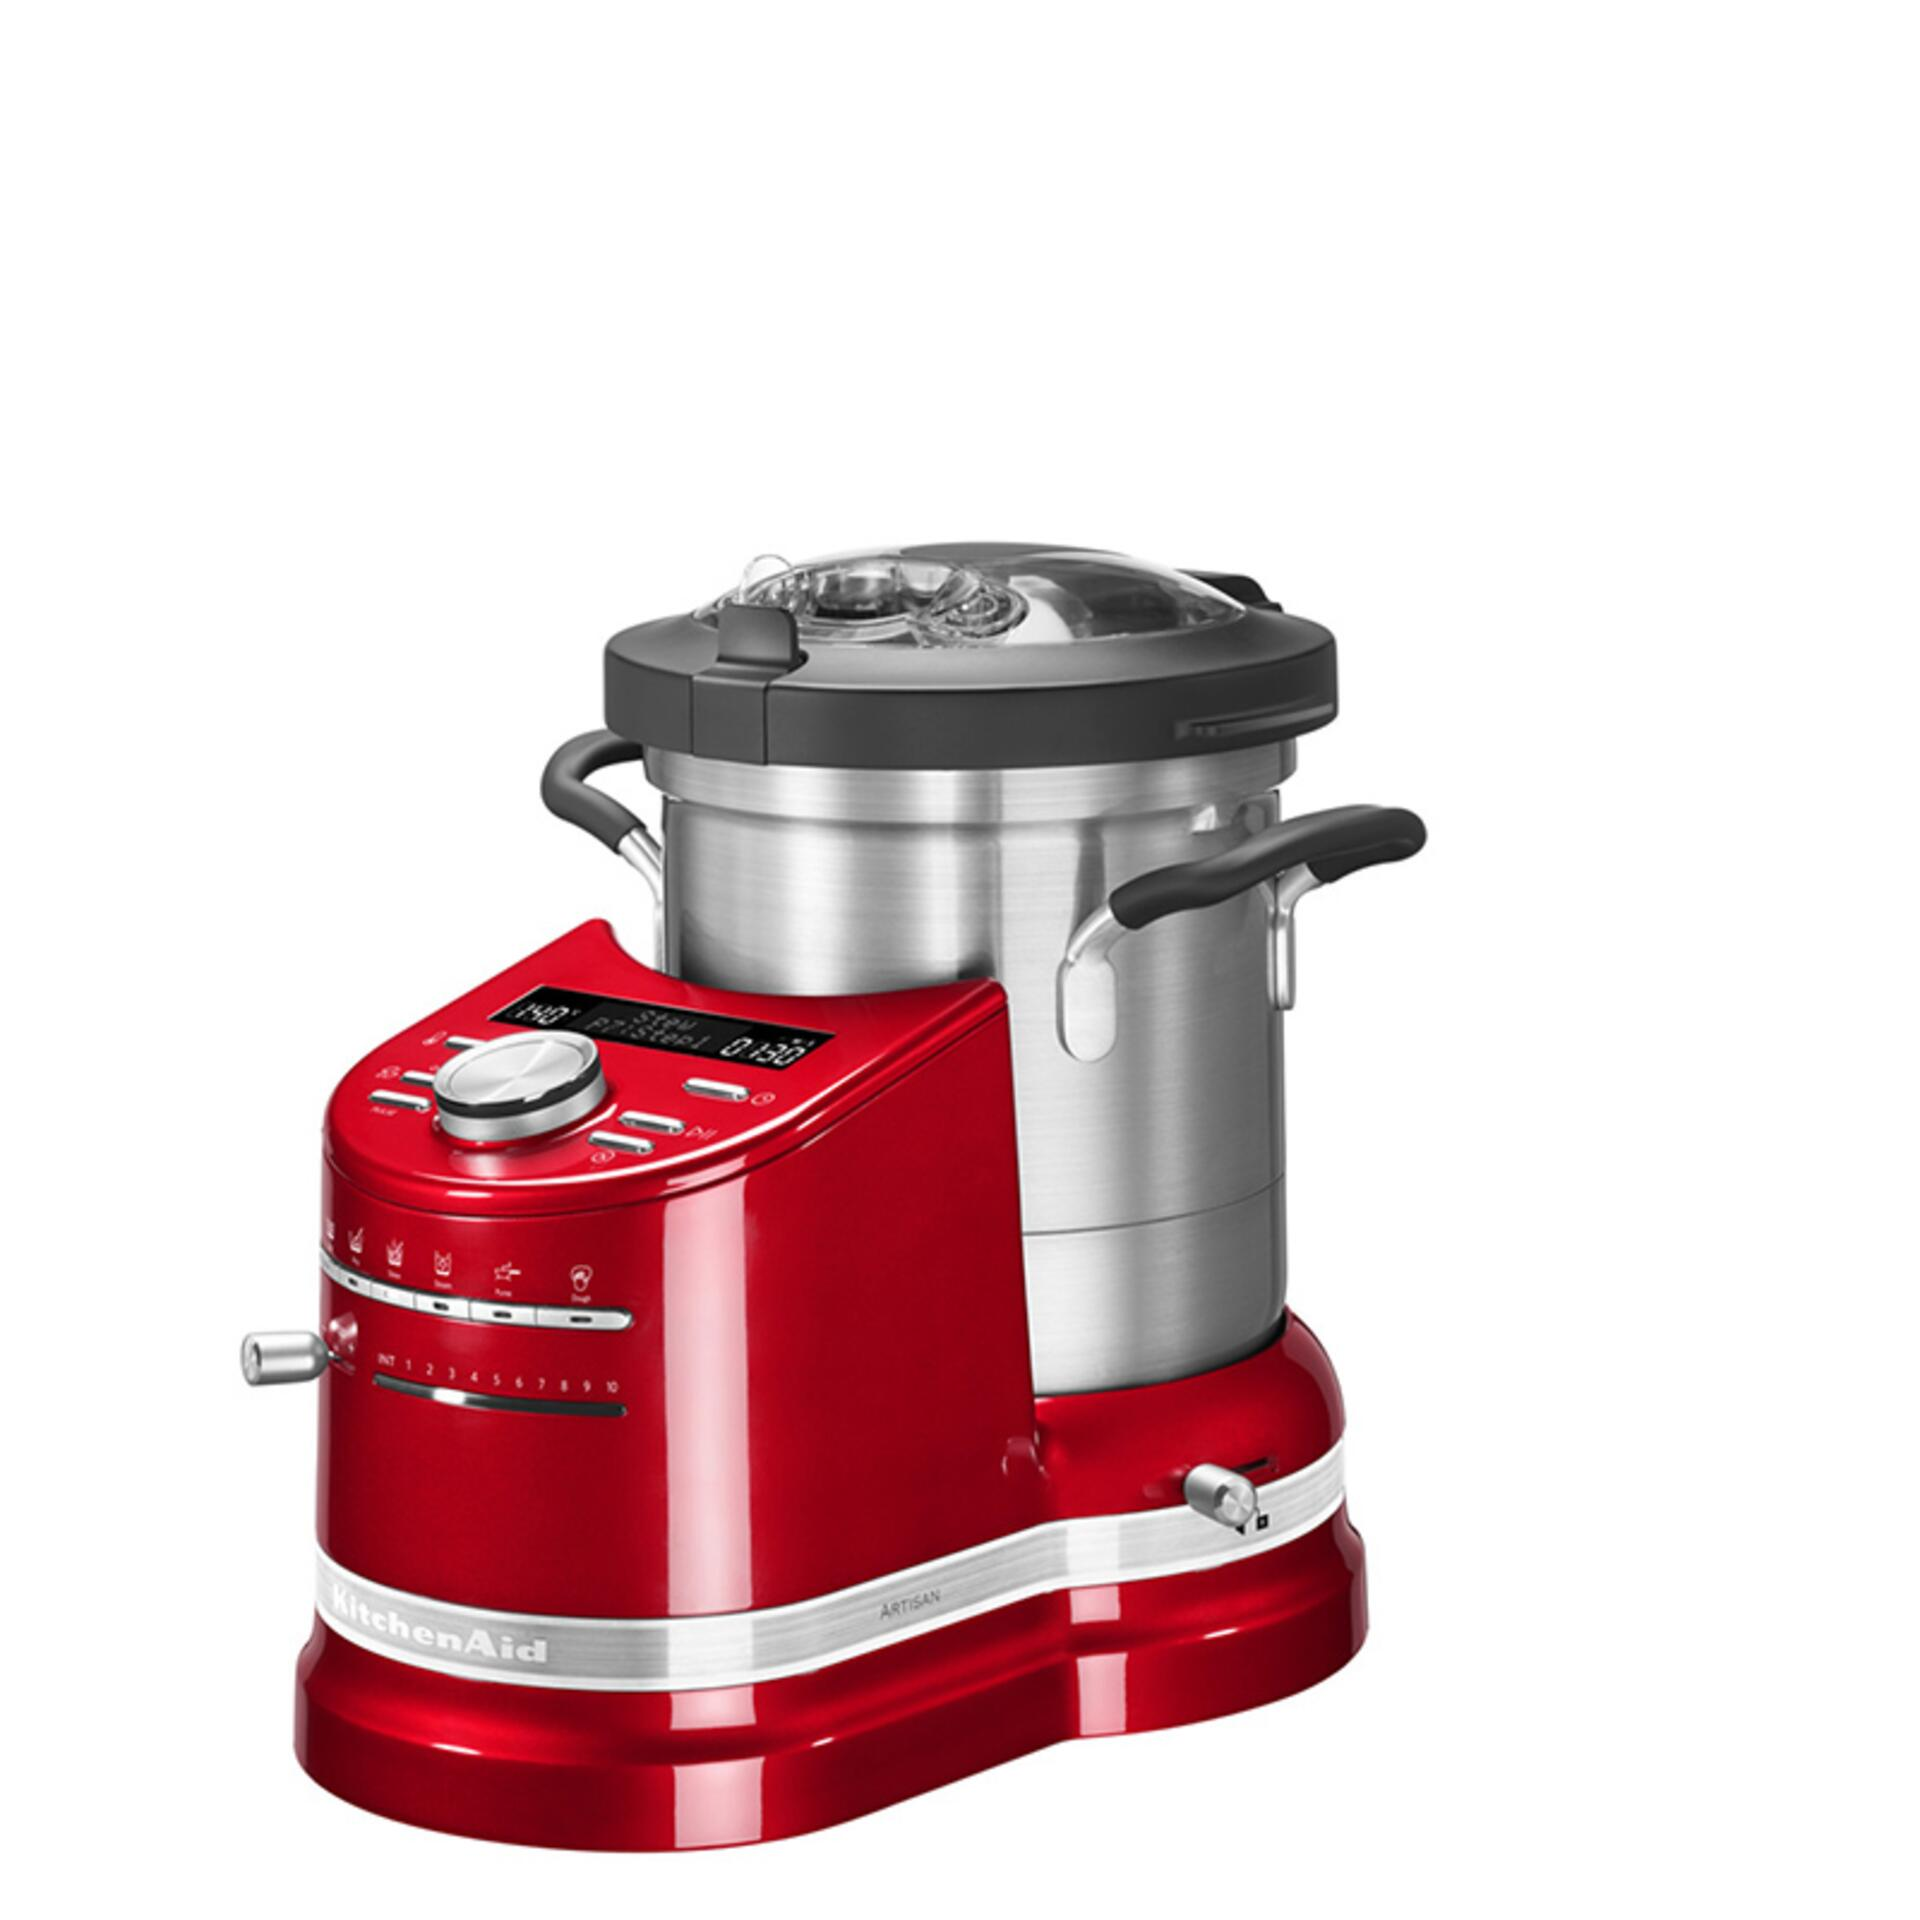 KitchenAid Artisan Cook Processor 5KCF0103EER/4 Empire Red